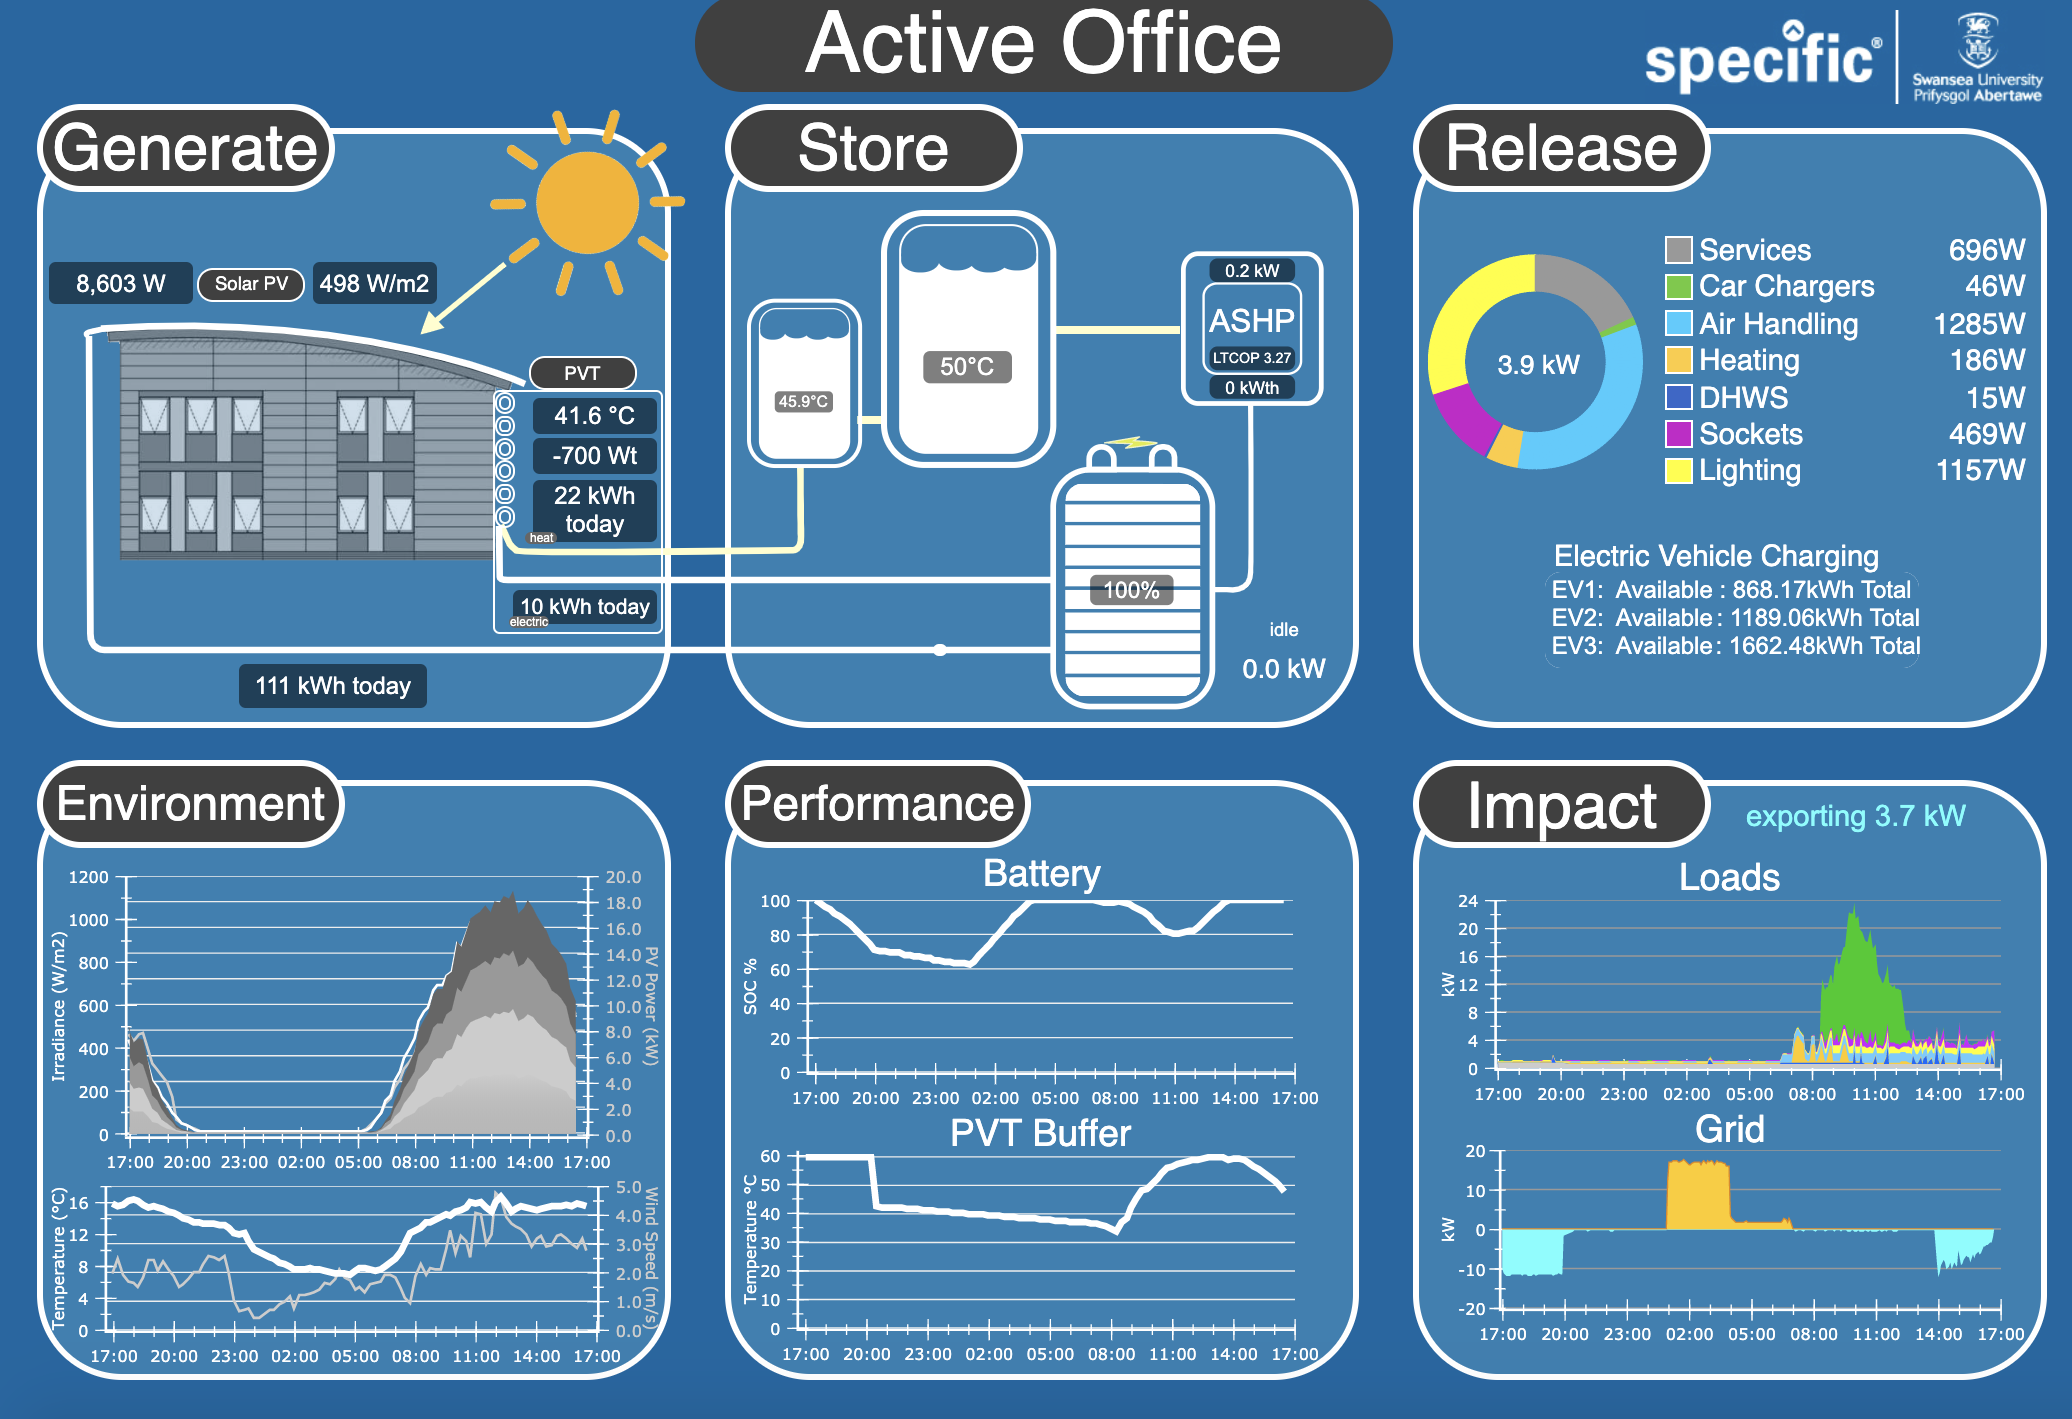 Live data interface developed with Cisco systems to monitor to full suite of innovative technologies